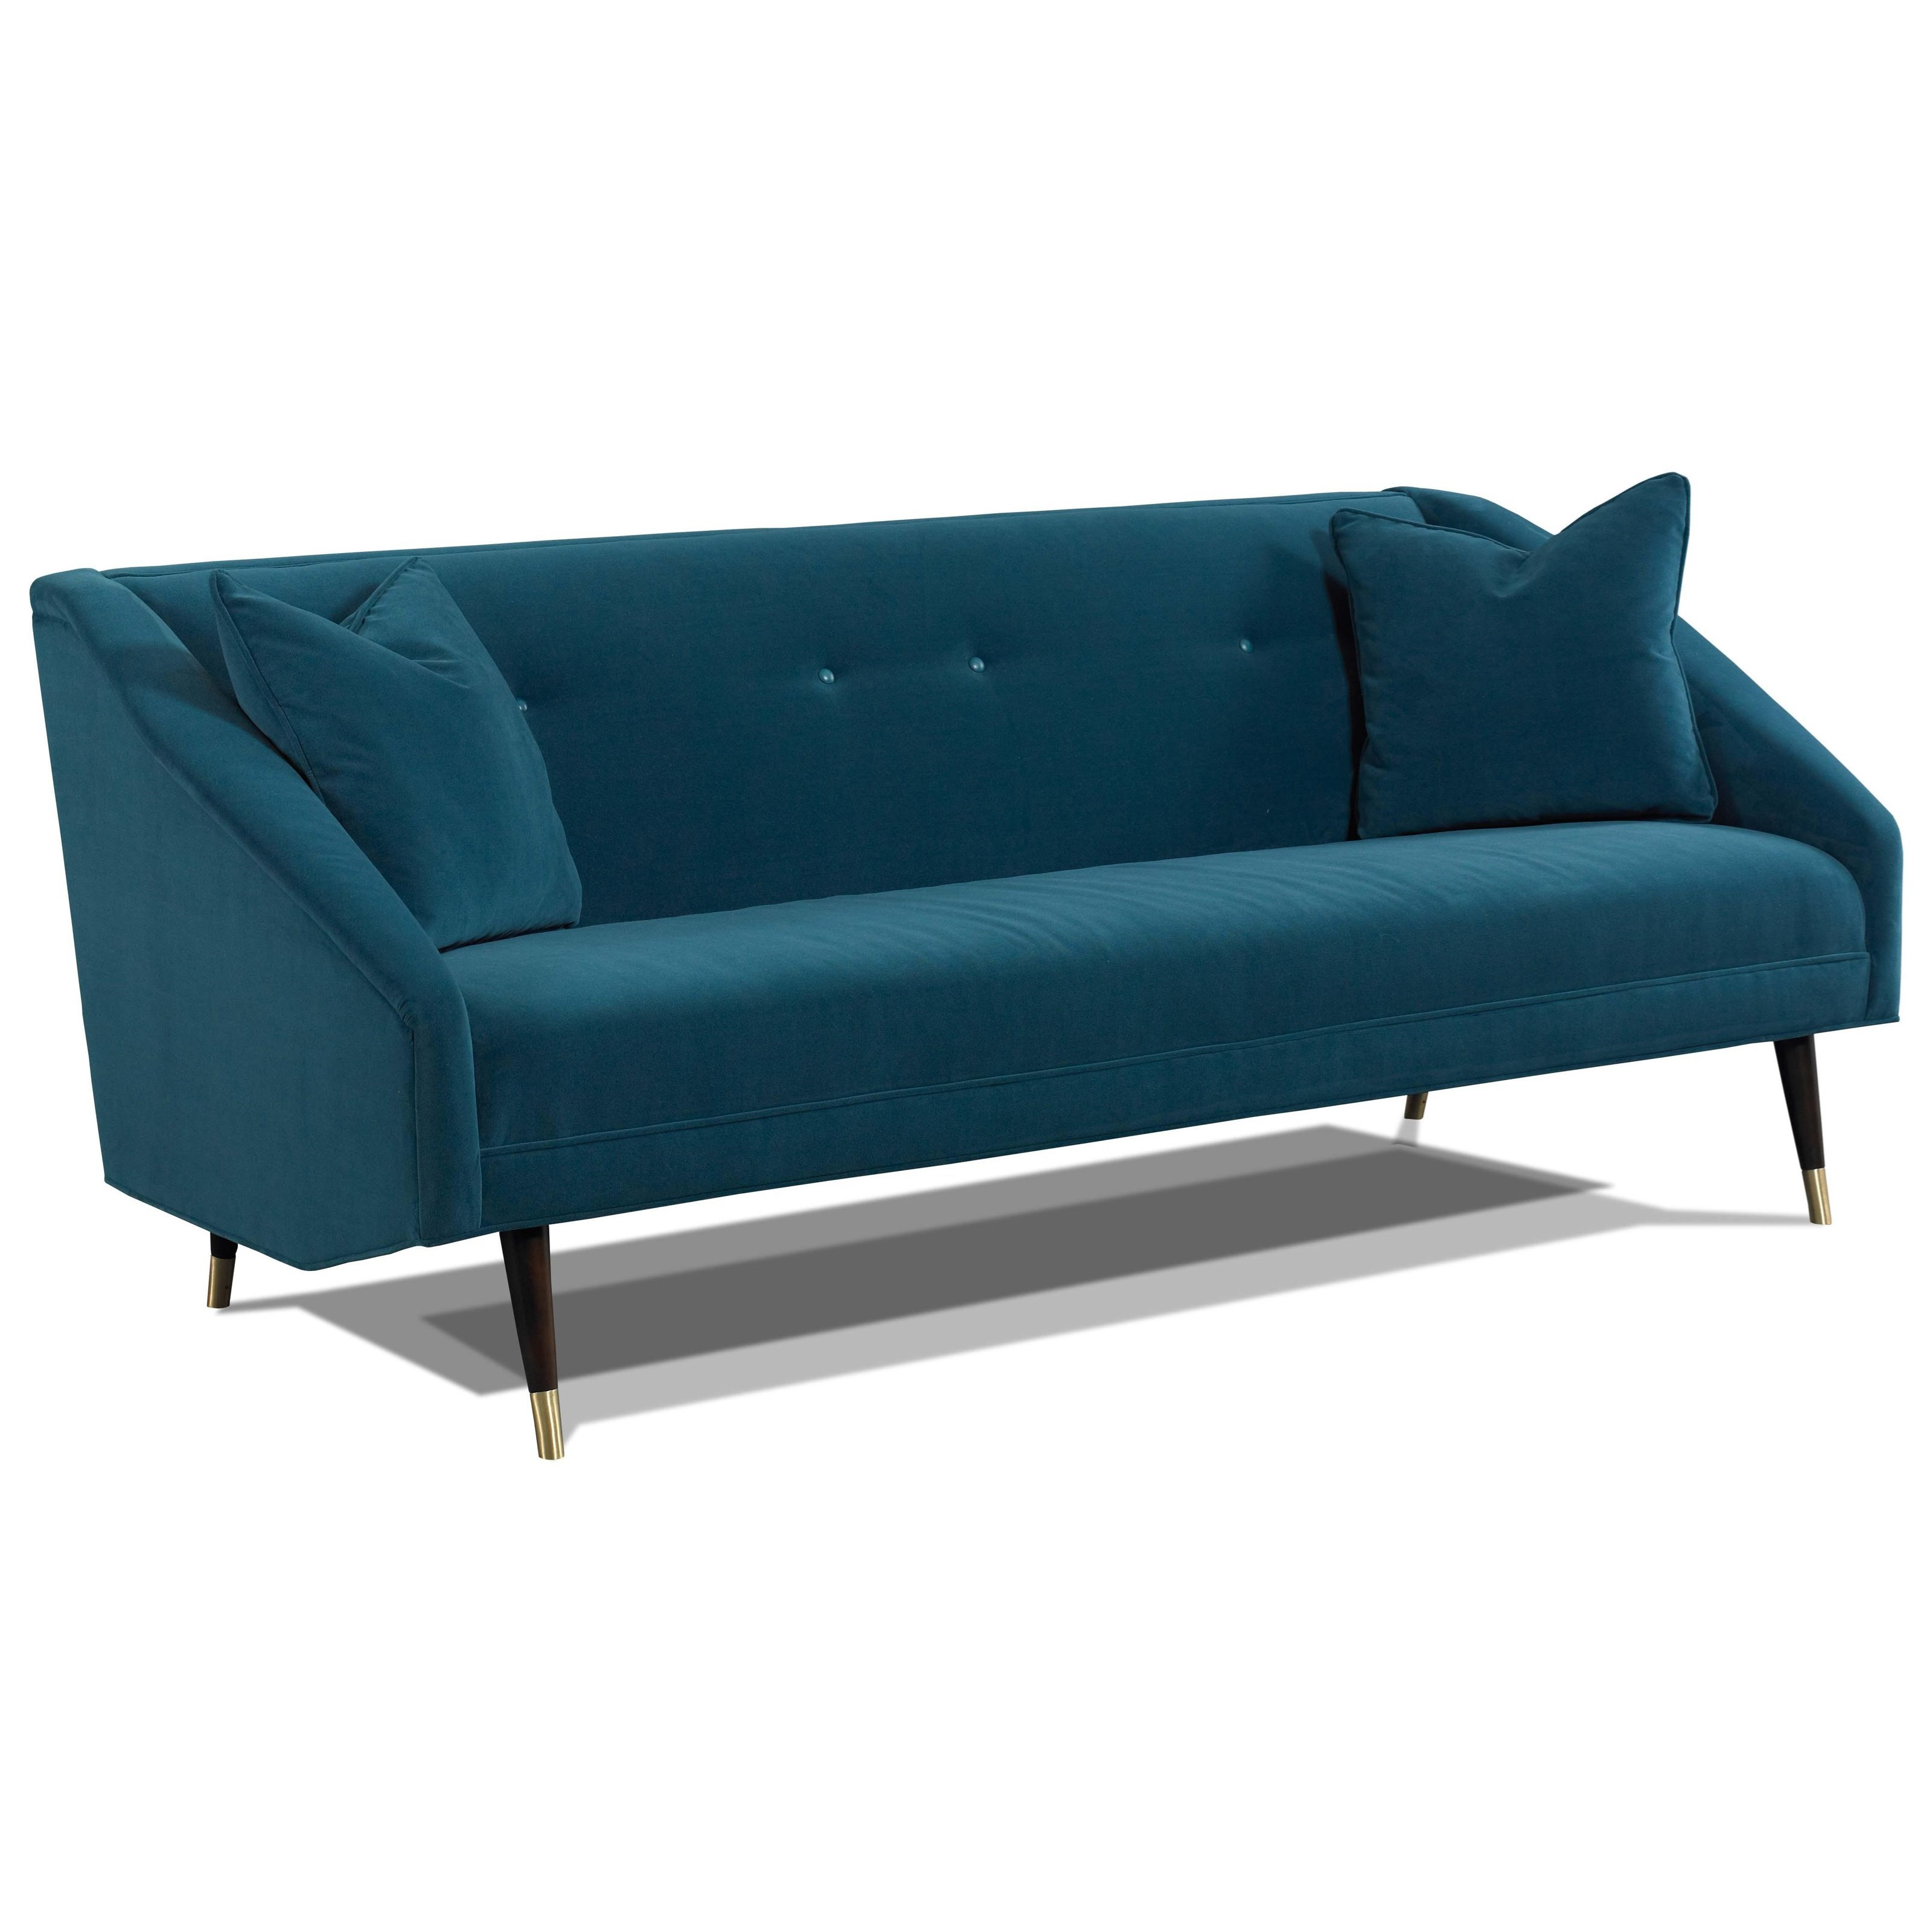 Precedent 3234 Finnick Sofa - Item Number: 3234-S1-Henry Peacock